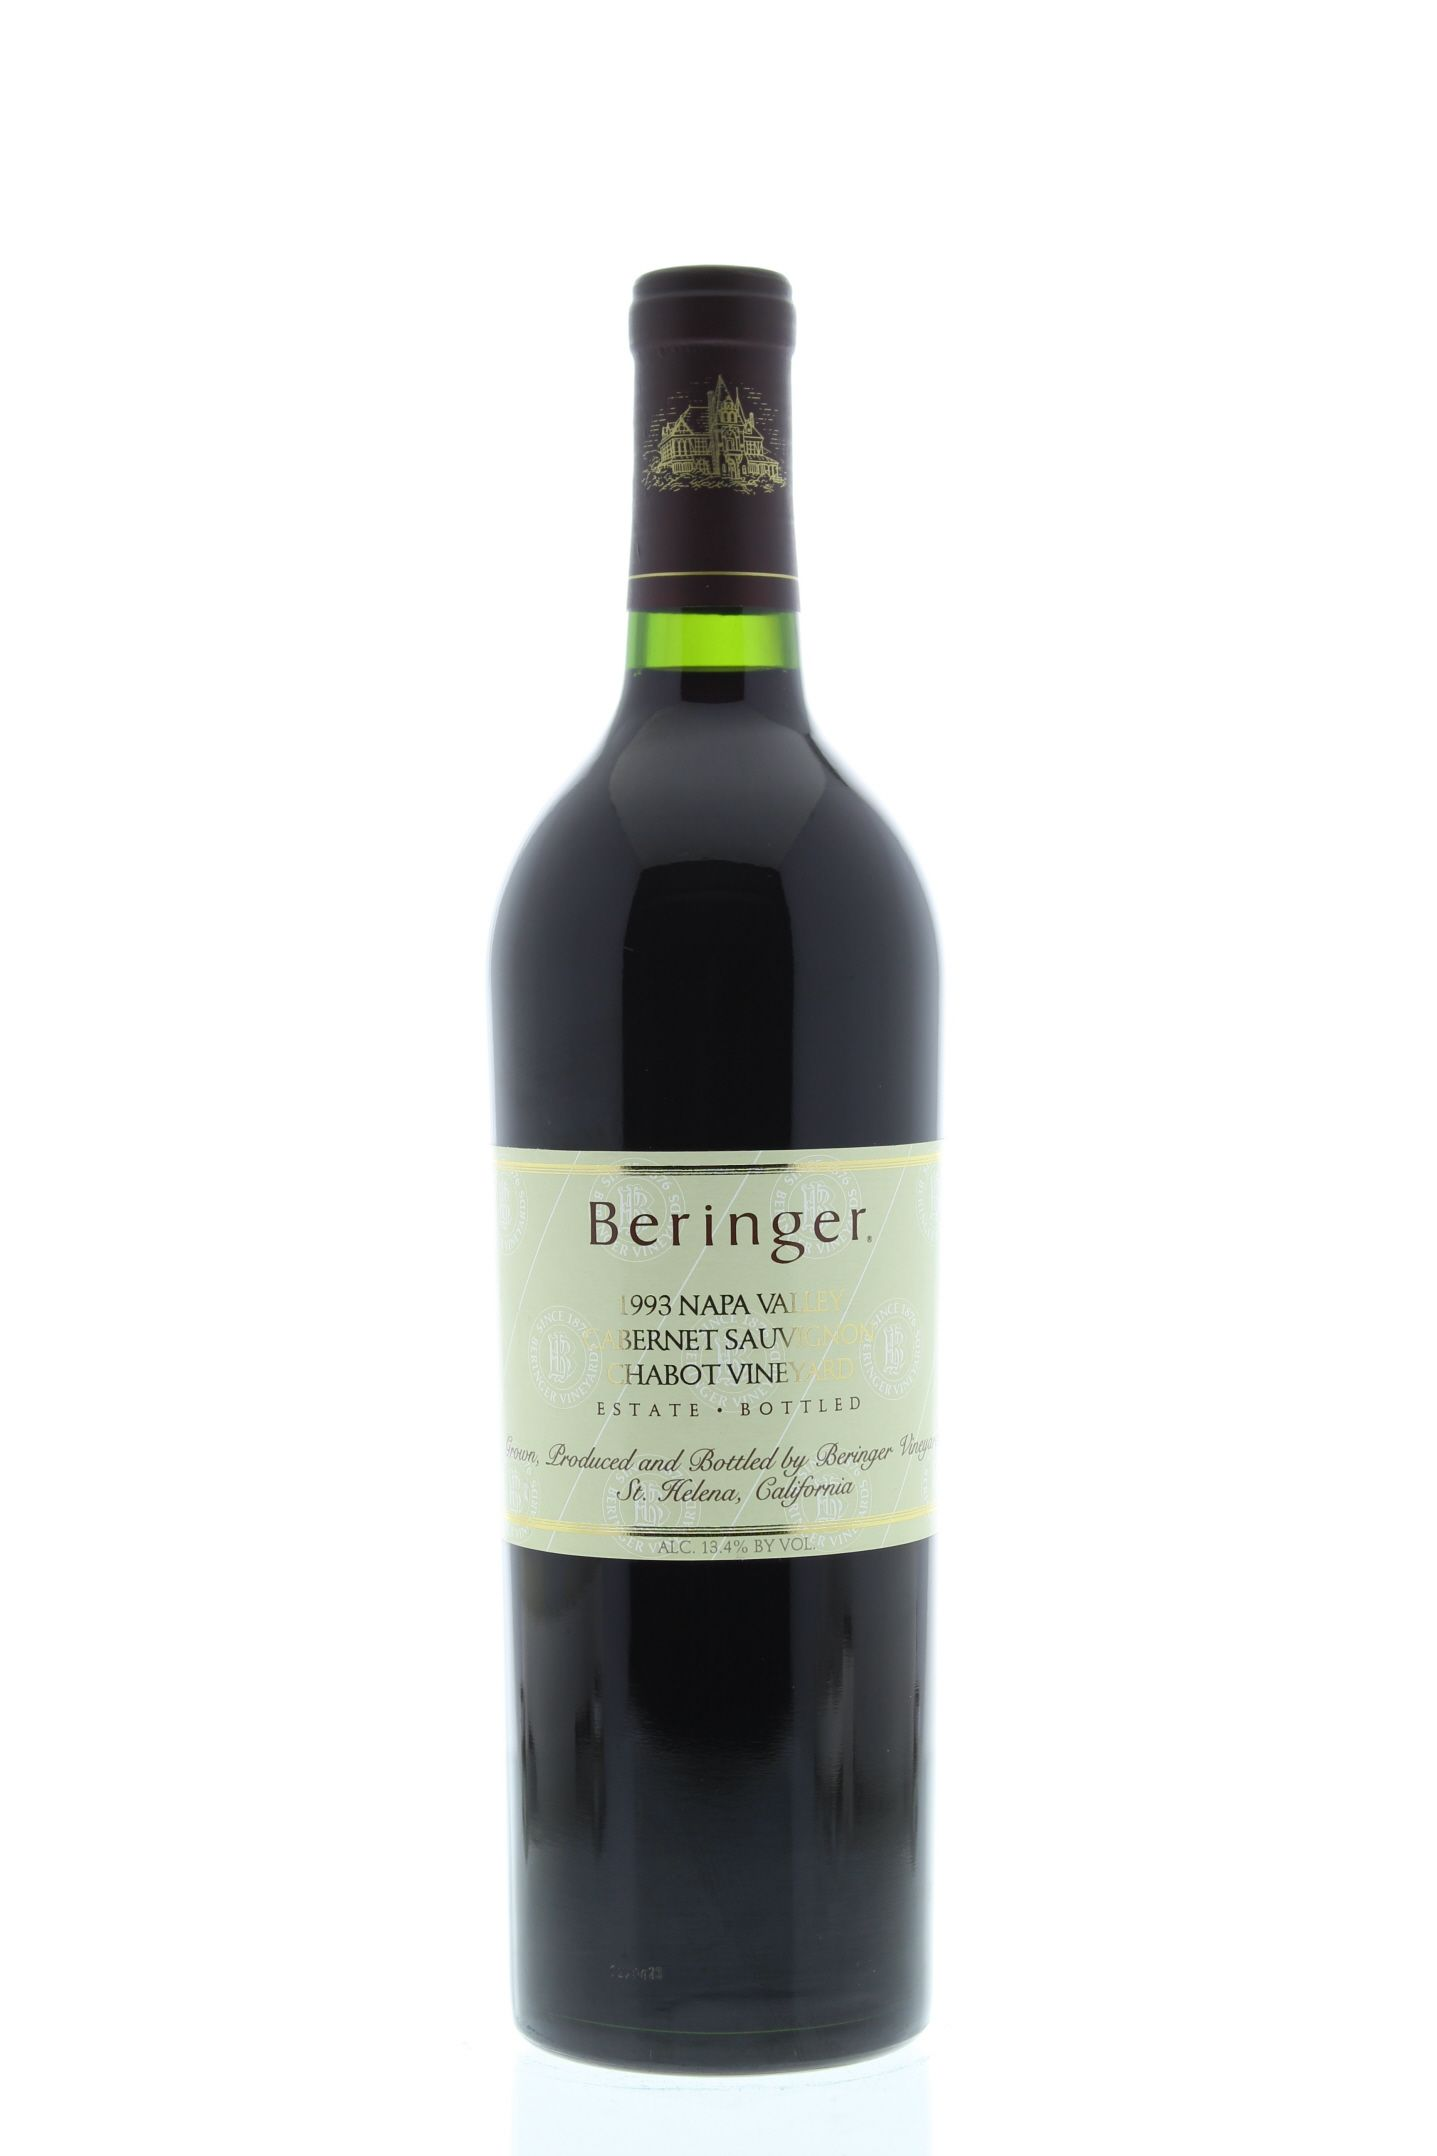 Beringer Chabot Vineyard Cabernet Sauvignon 1993 Front Bottle Shot